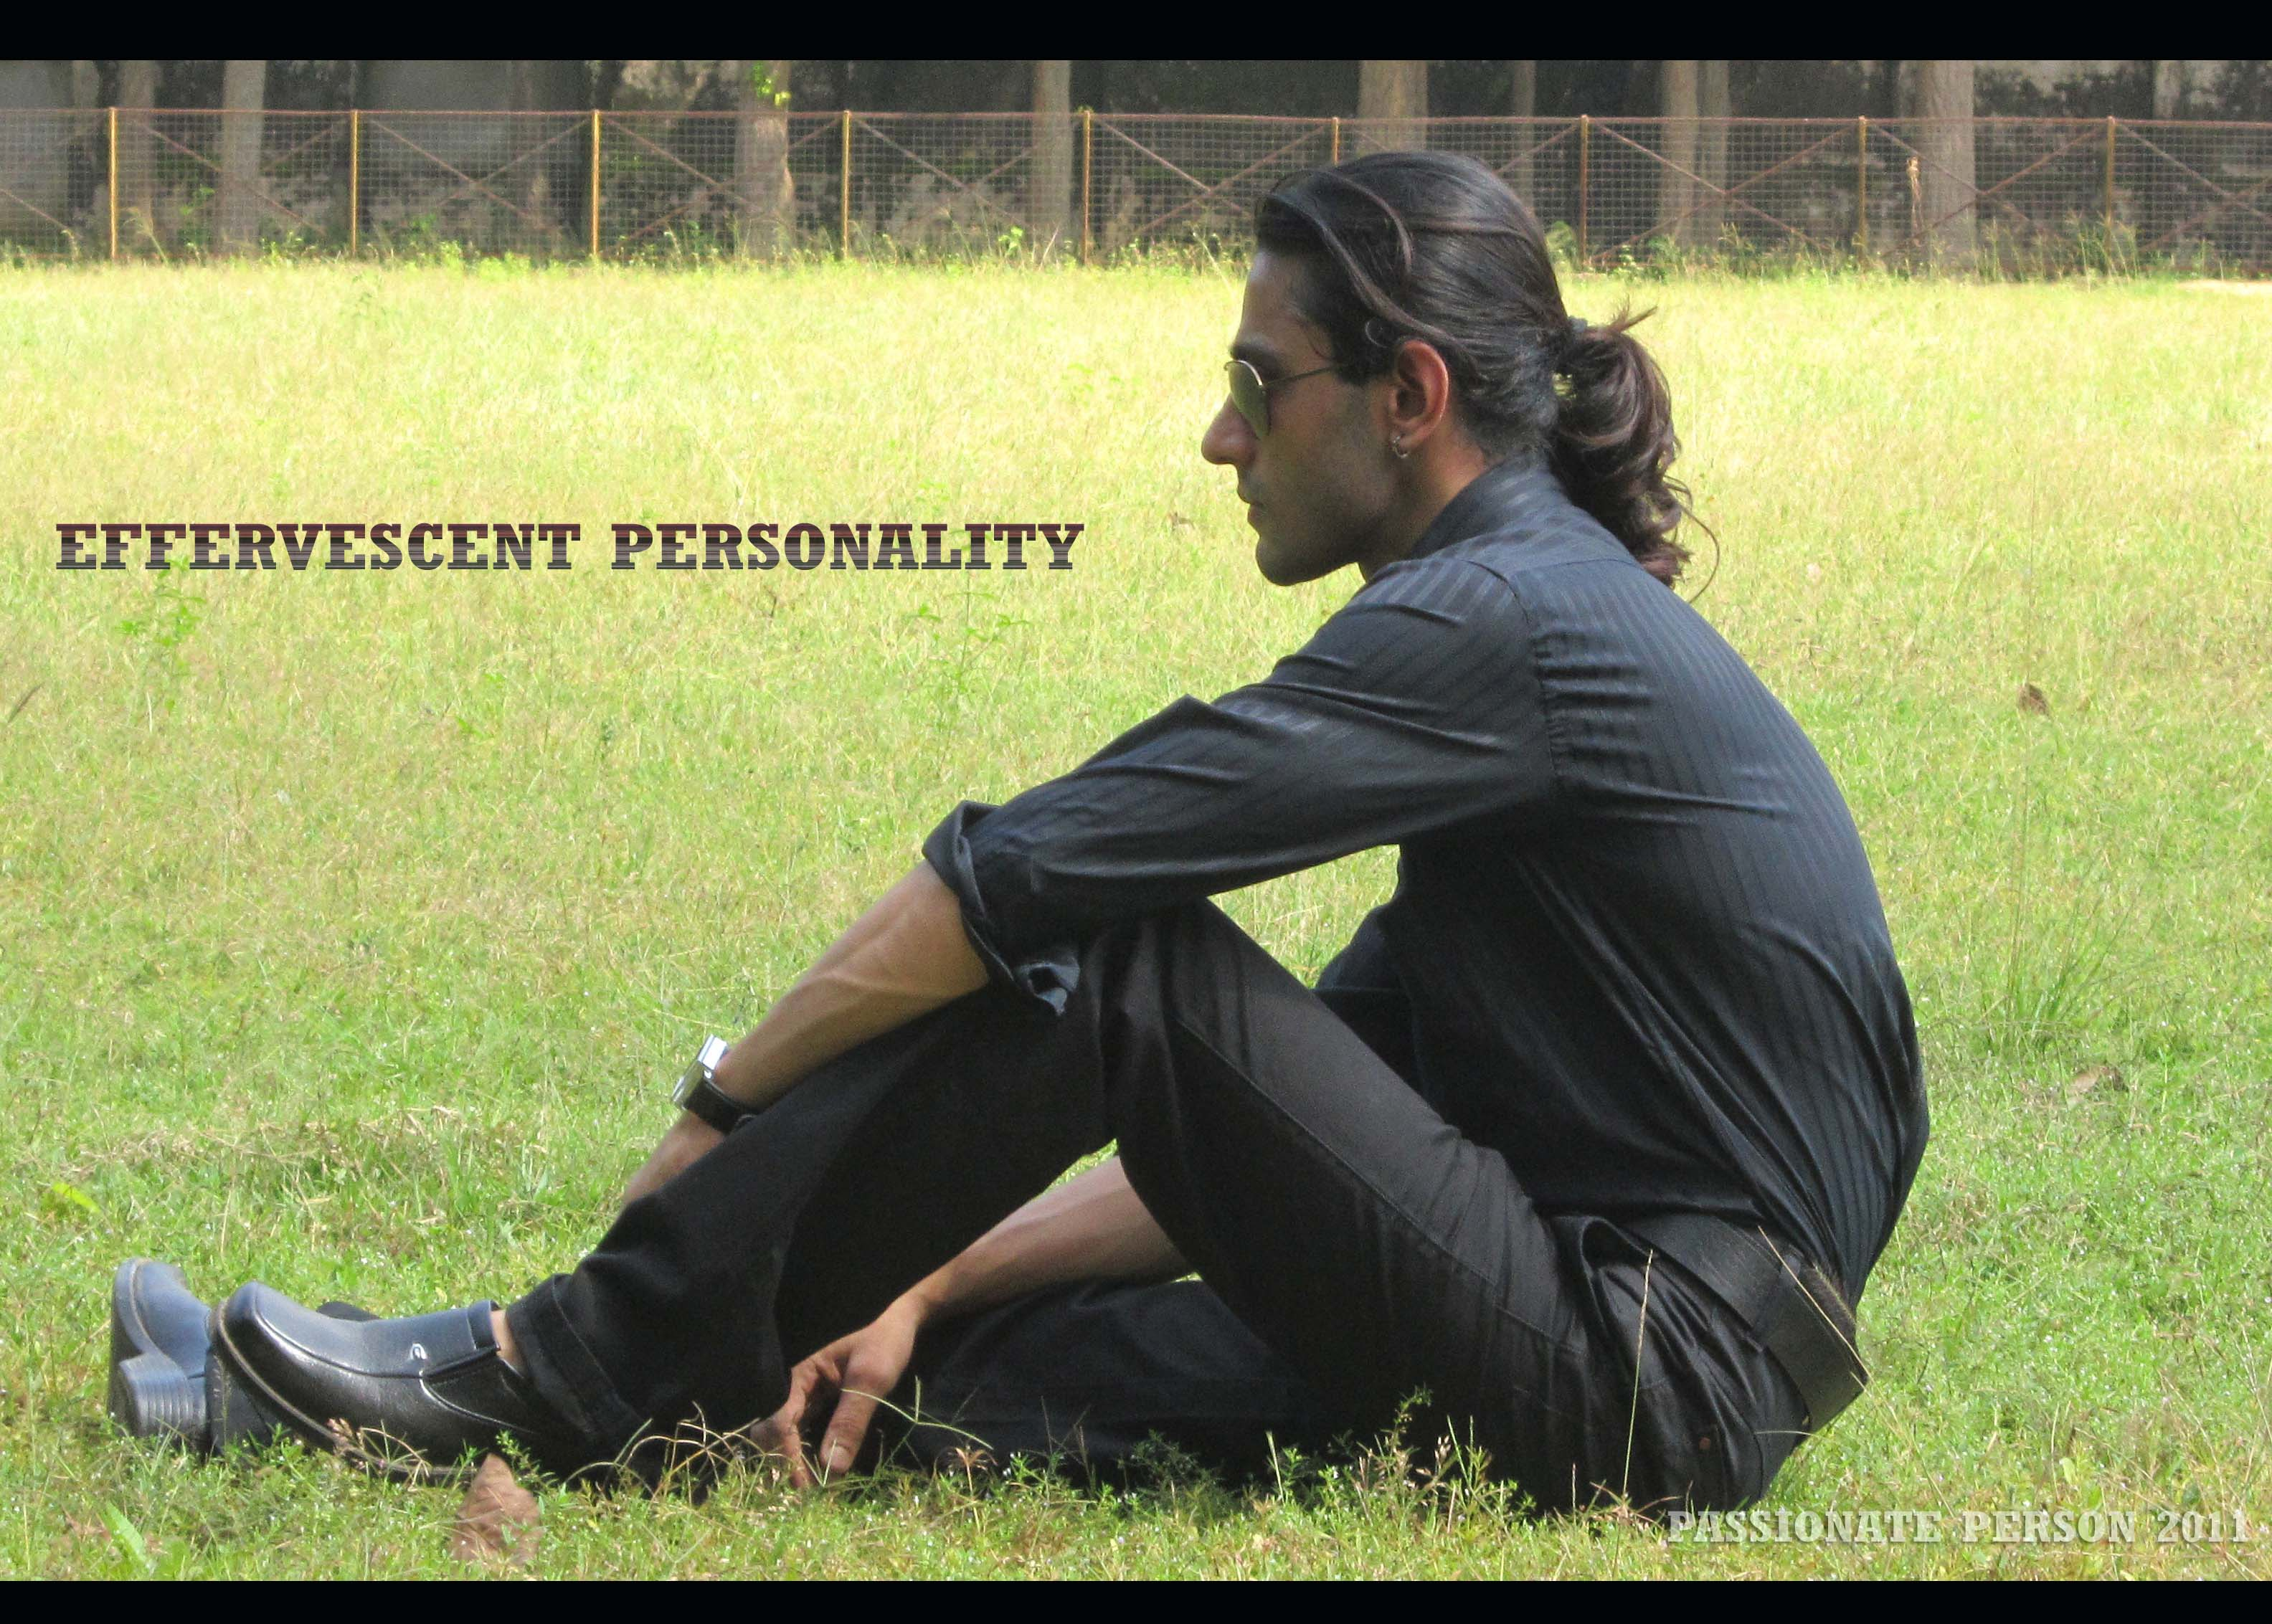 Men - Model  - Passionate Men Model - Rajkumar Patra Ponytail Hairstyle - Bengali Model Rajkumar Wallpaper